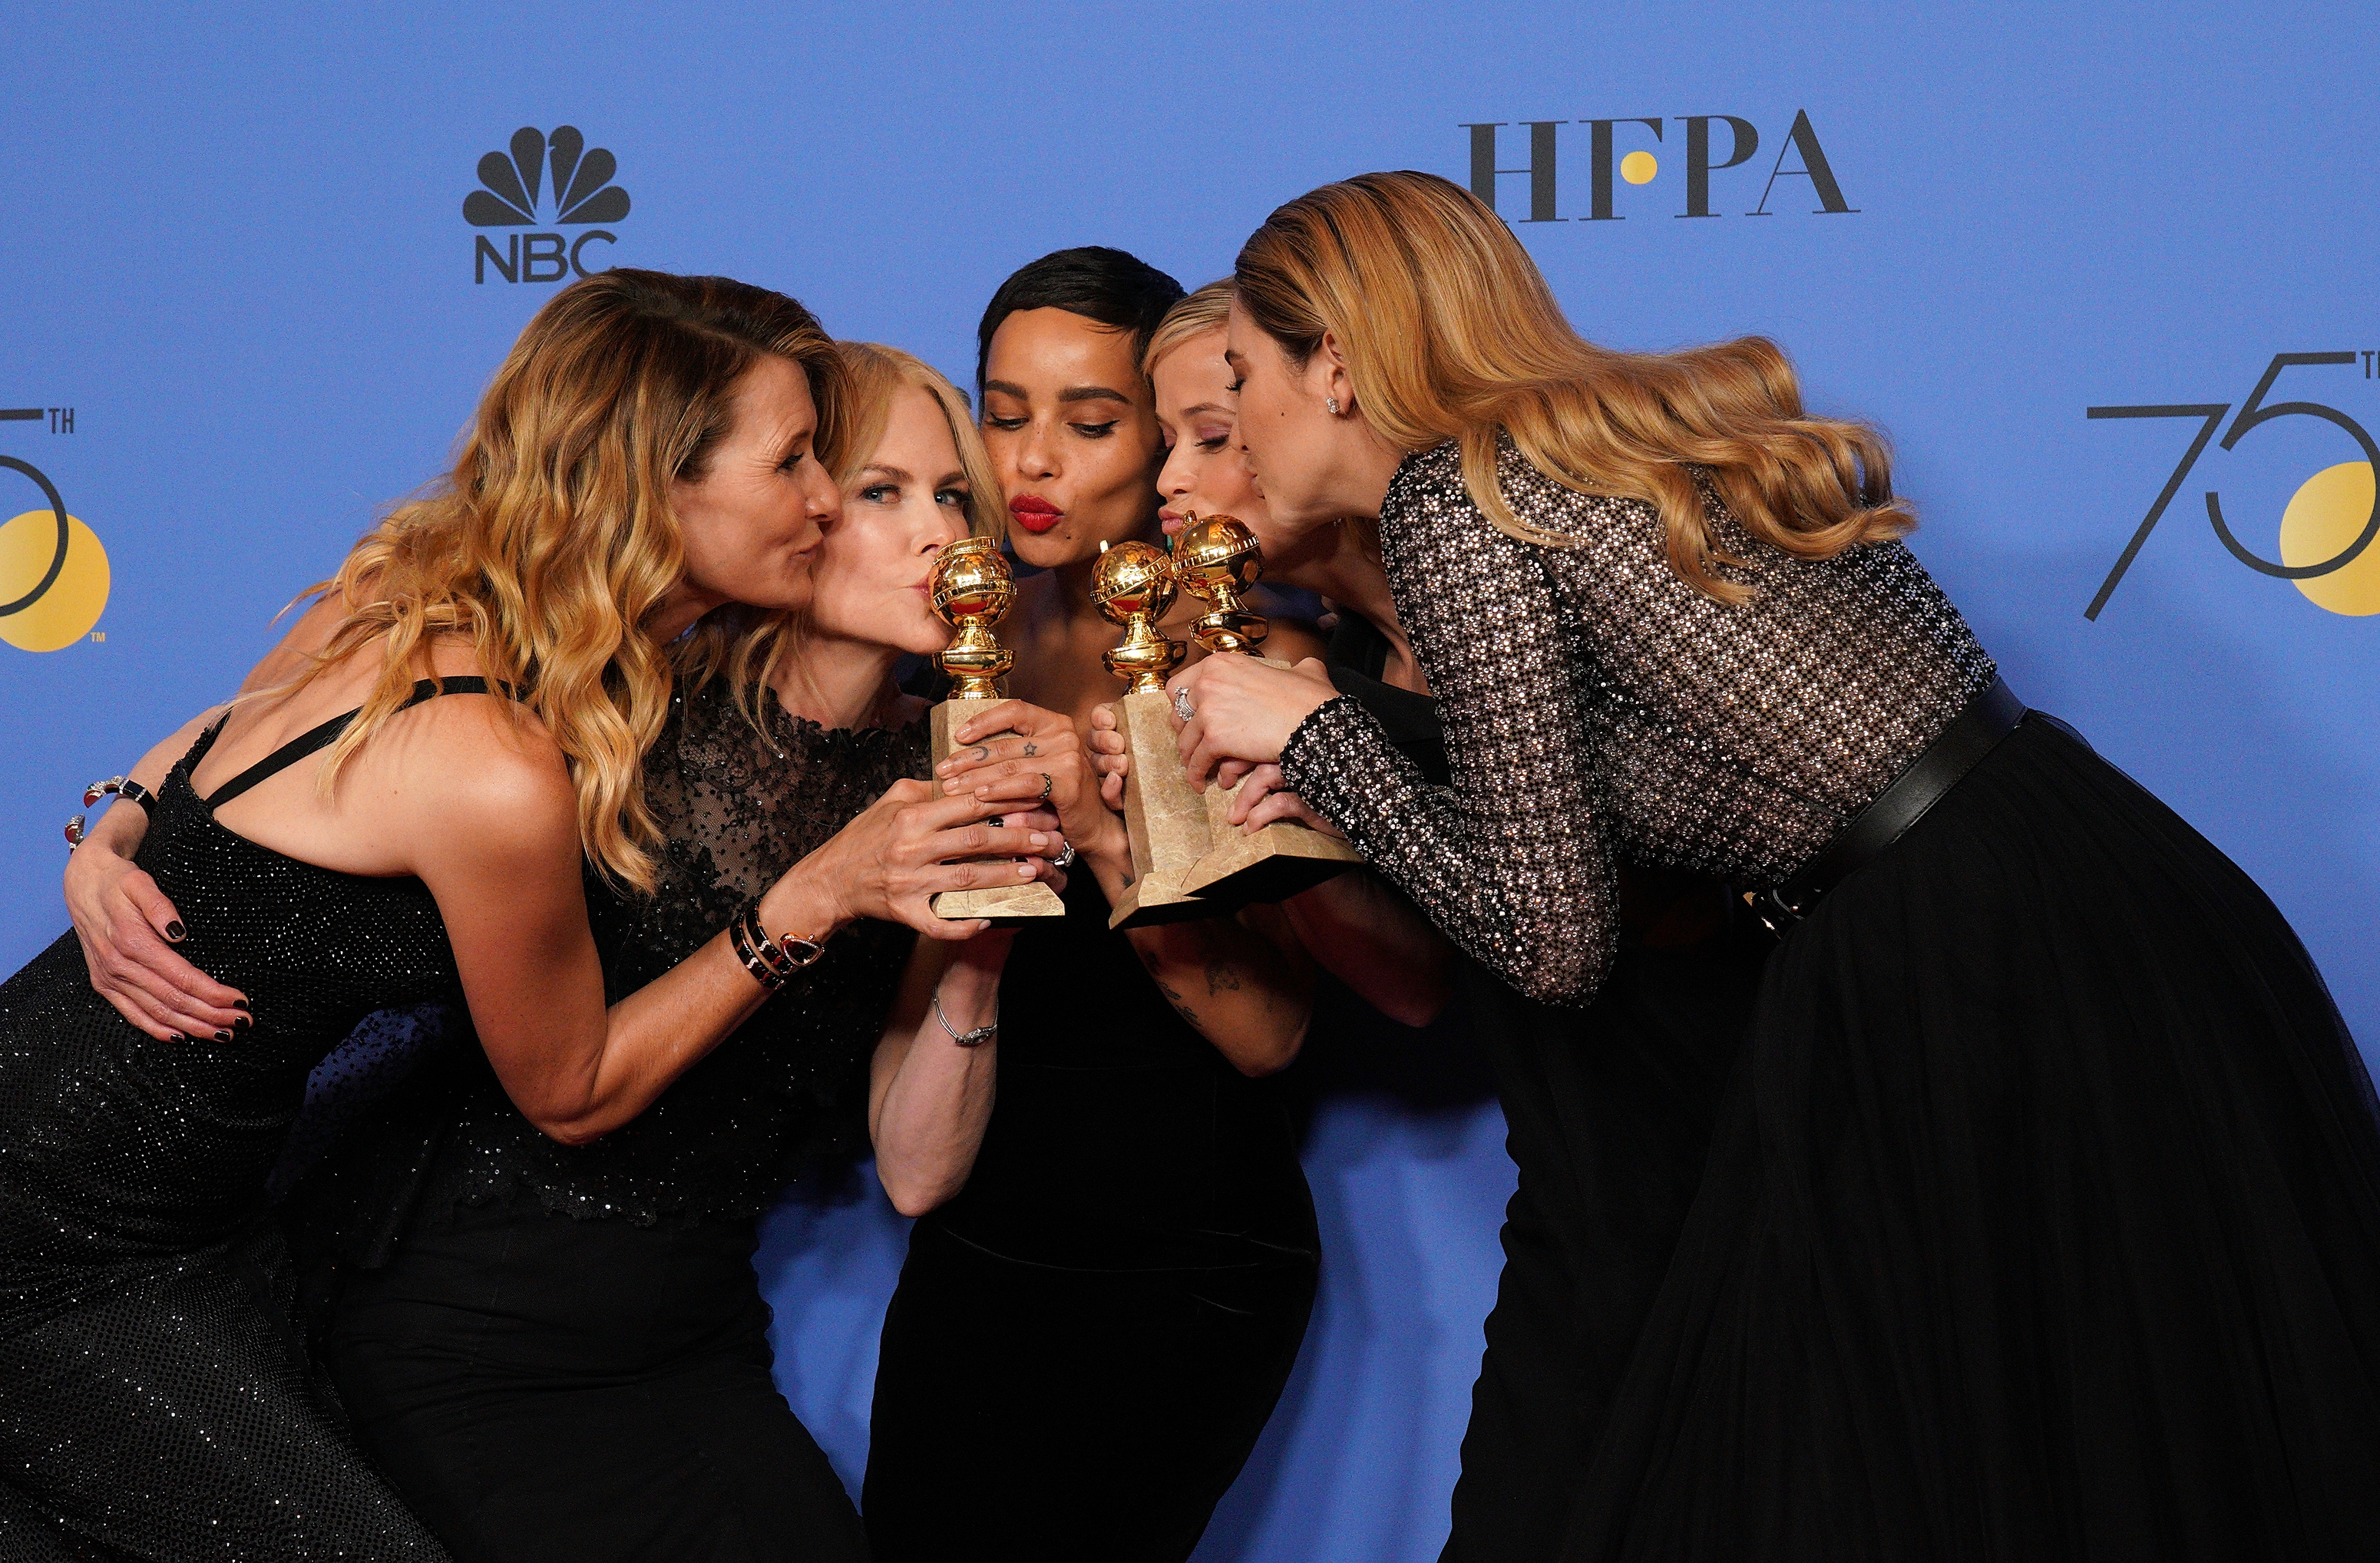 The cast of 'Big Little Lies' won fistfuls of awards for the first season of the HBO show. Credit: PA Images